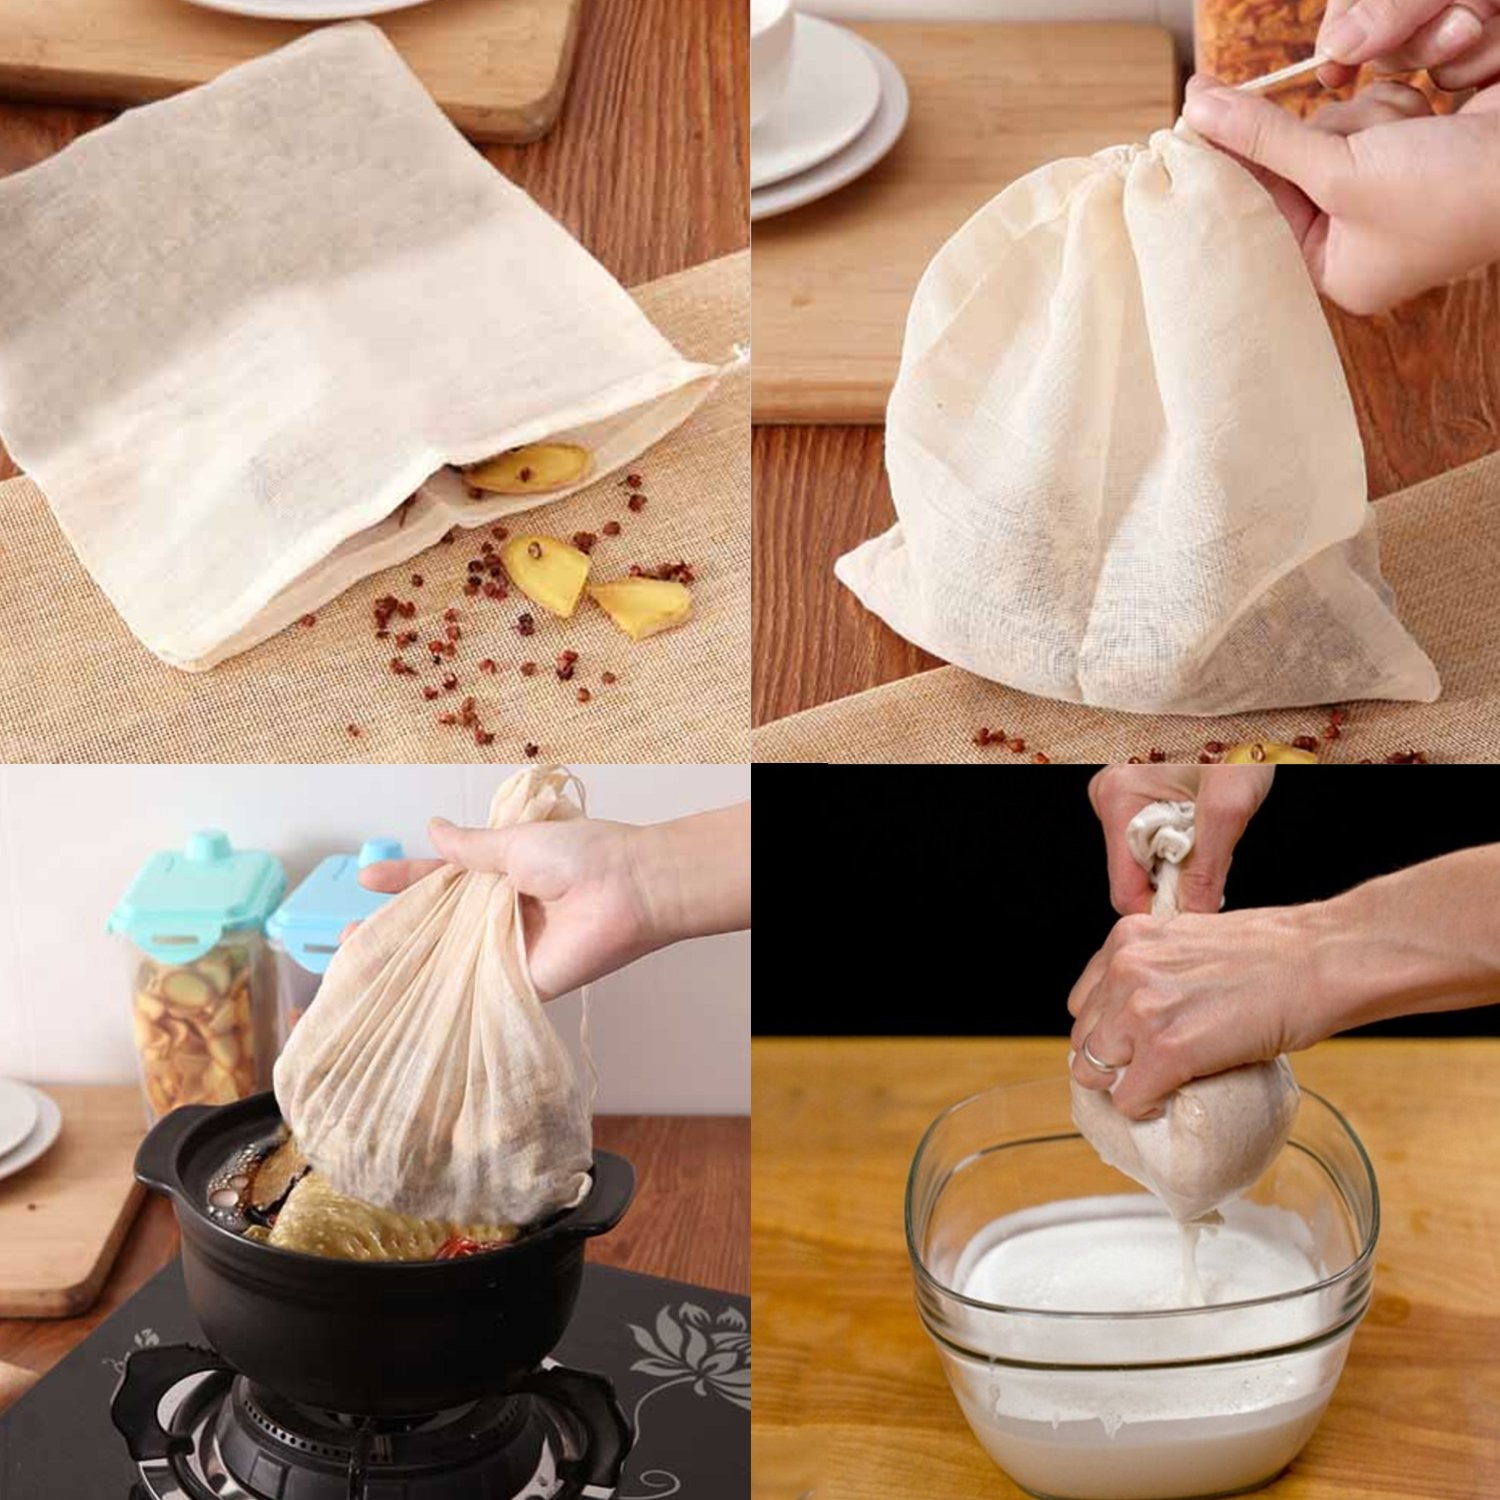 Cheesecloth /63 Sq Feet: Grade 90-100% Unbleached Cotton - Reusable All Purpose Food Strainer & Cold Brew Coffee Filter - Nut Milk Bag (7 Yards) by La Babite (Image #4)